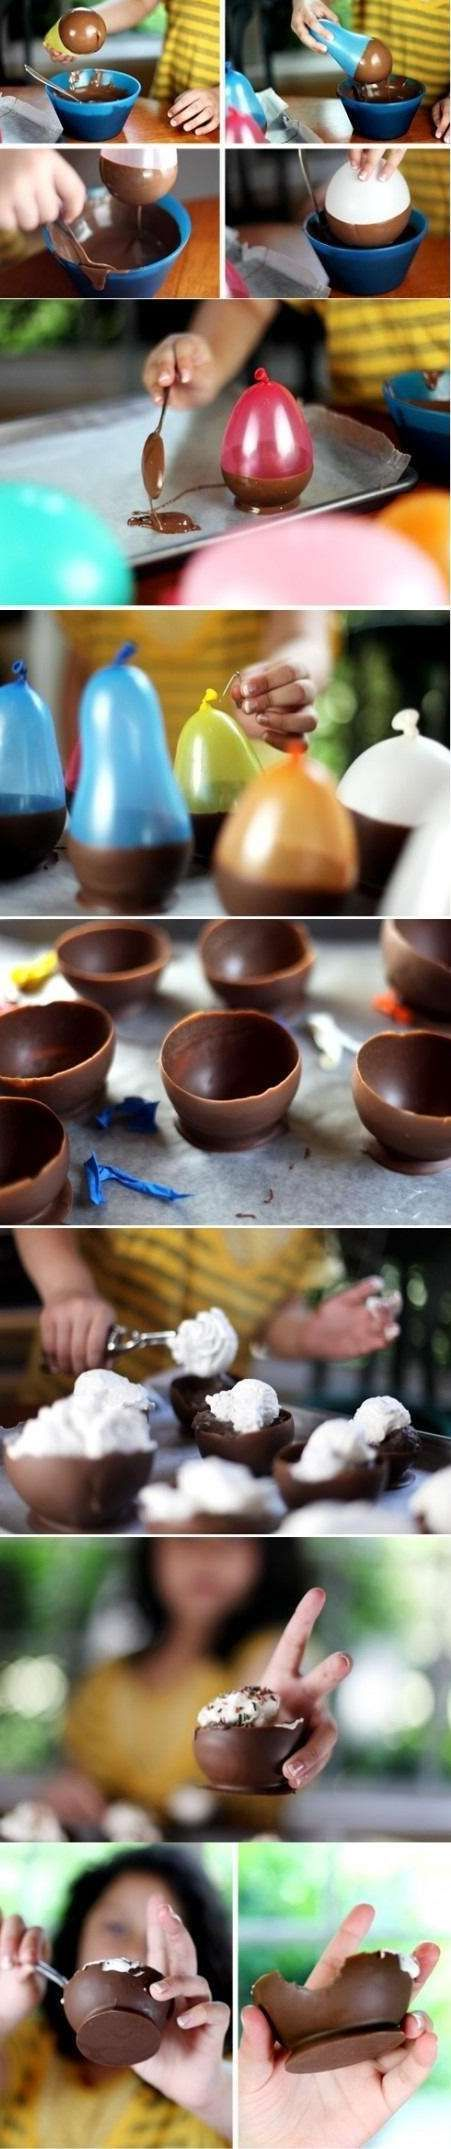 Chocolate Bowls. This is how you can make chocolate bowls for fancy deserts! I thought I needed a special mold to do it just shows how much I know. This is going to be tried out at my house next weekend